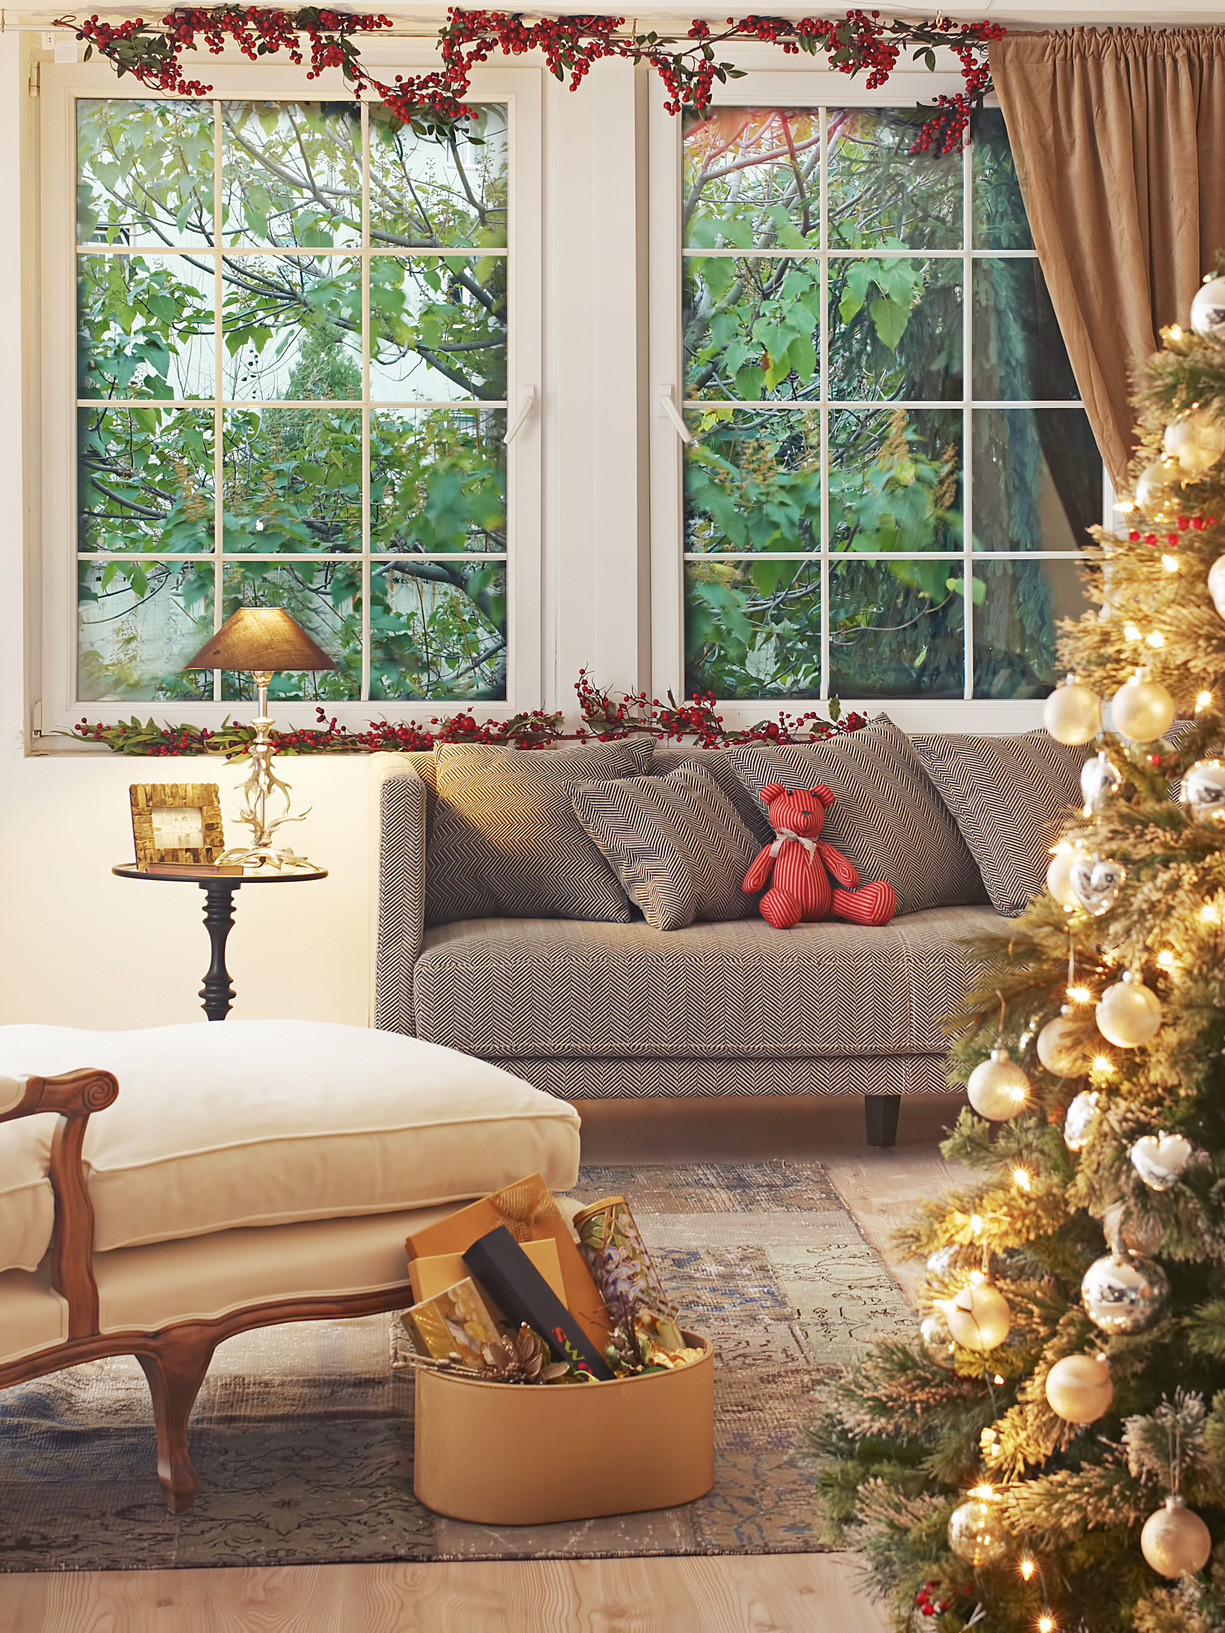 Roseville CA REALTOR Kaye Swain blogger sharing selling your house in winter tips using Christmas home decor staging